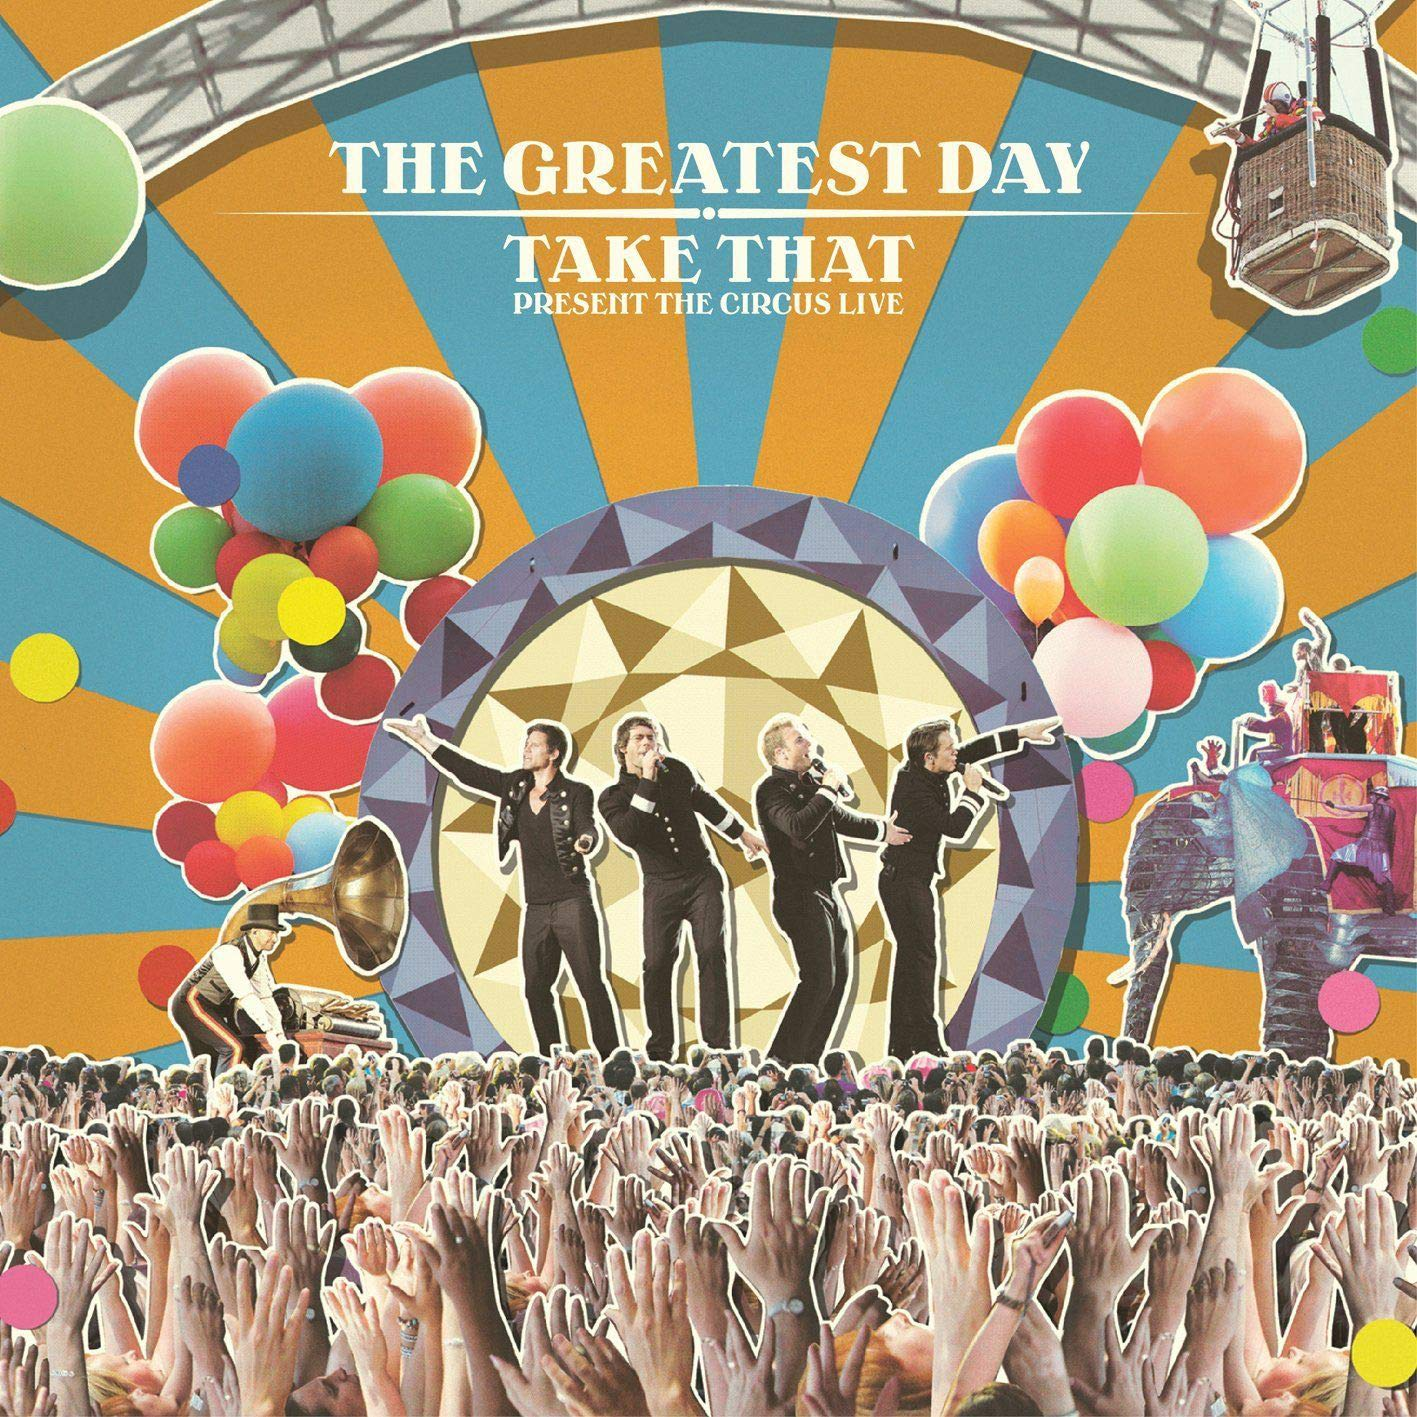 Take That Greatest Day Take That Present The Circus Live Music